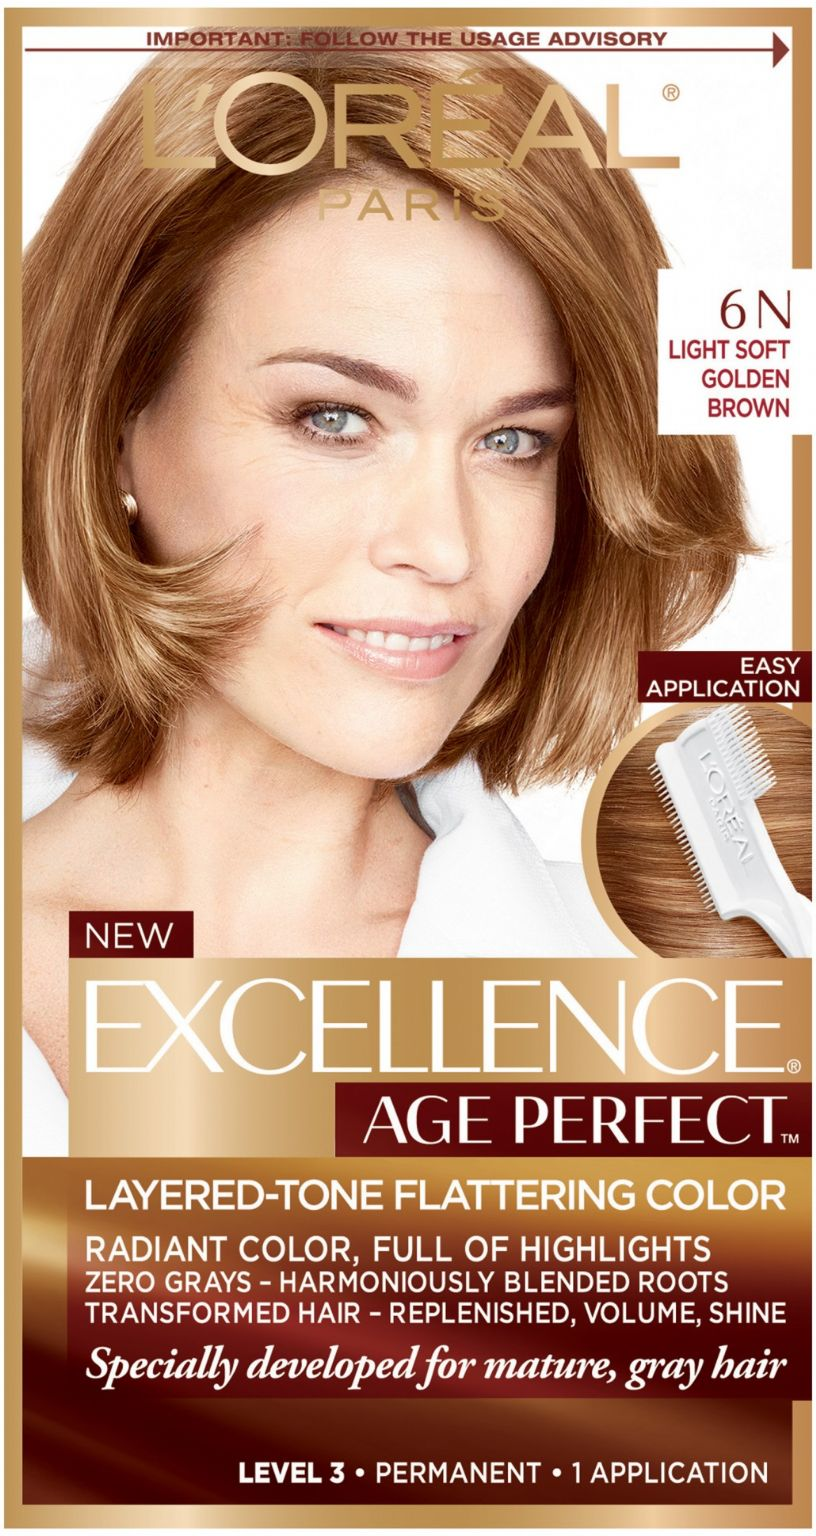 L\'Oreal Excellence Age Perfect reviews, photo - Makeupalley